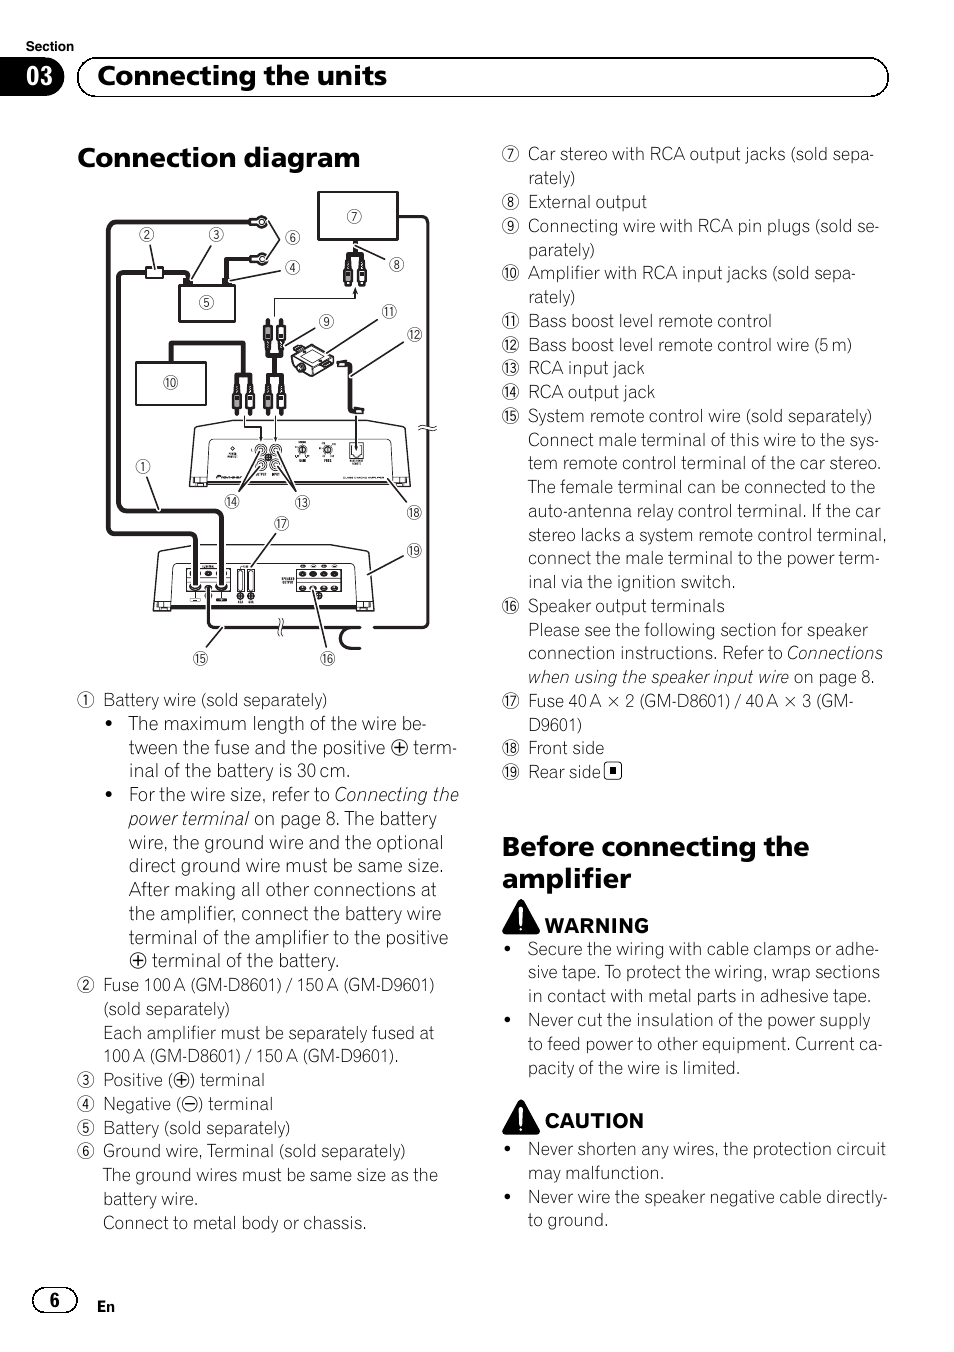 medium resolution of connection diagram before connecting the amplifier 03 connecting the units pioneer gm d8601 user manual page 6 92